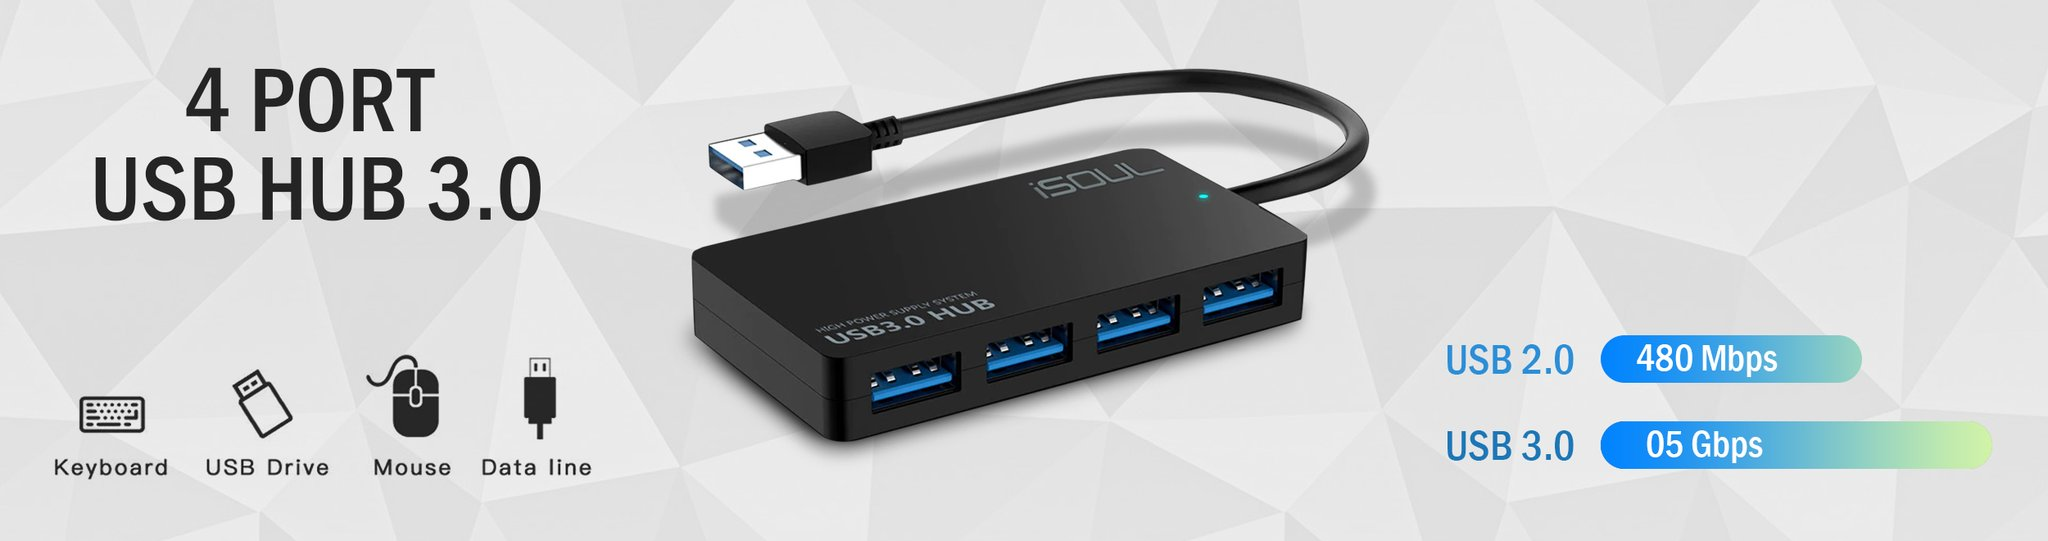 iSOUL 4 Port USB HUB